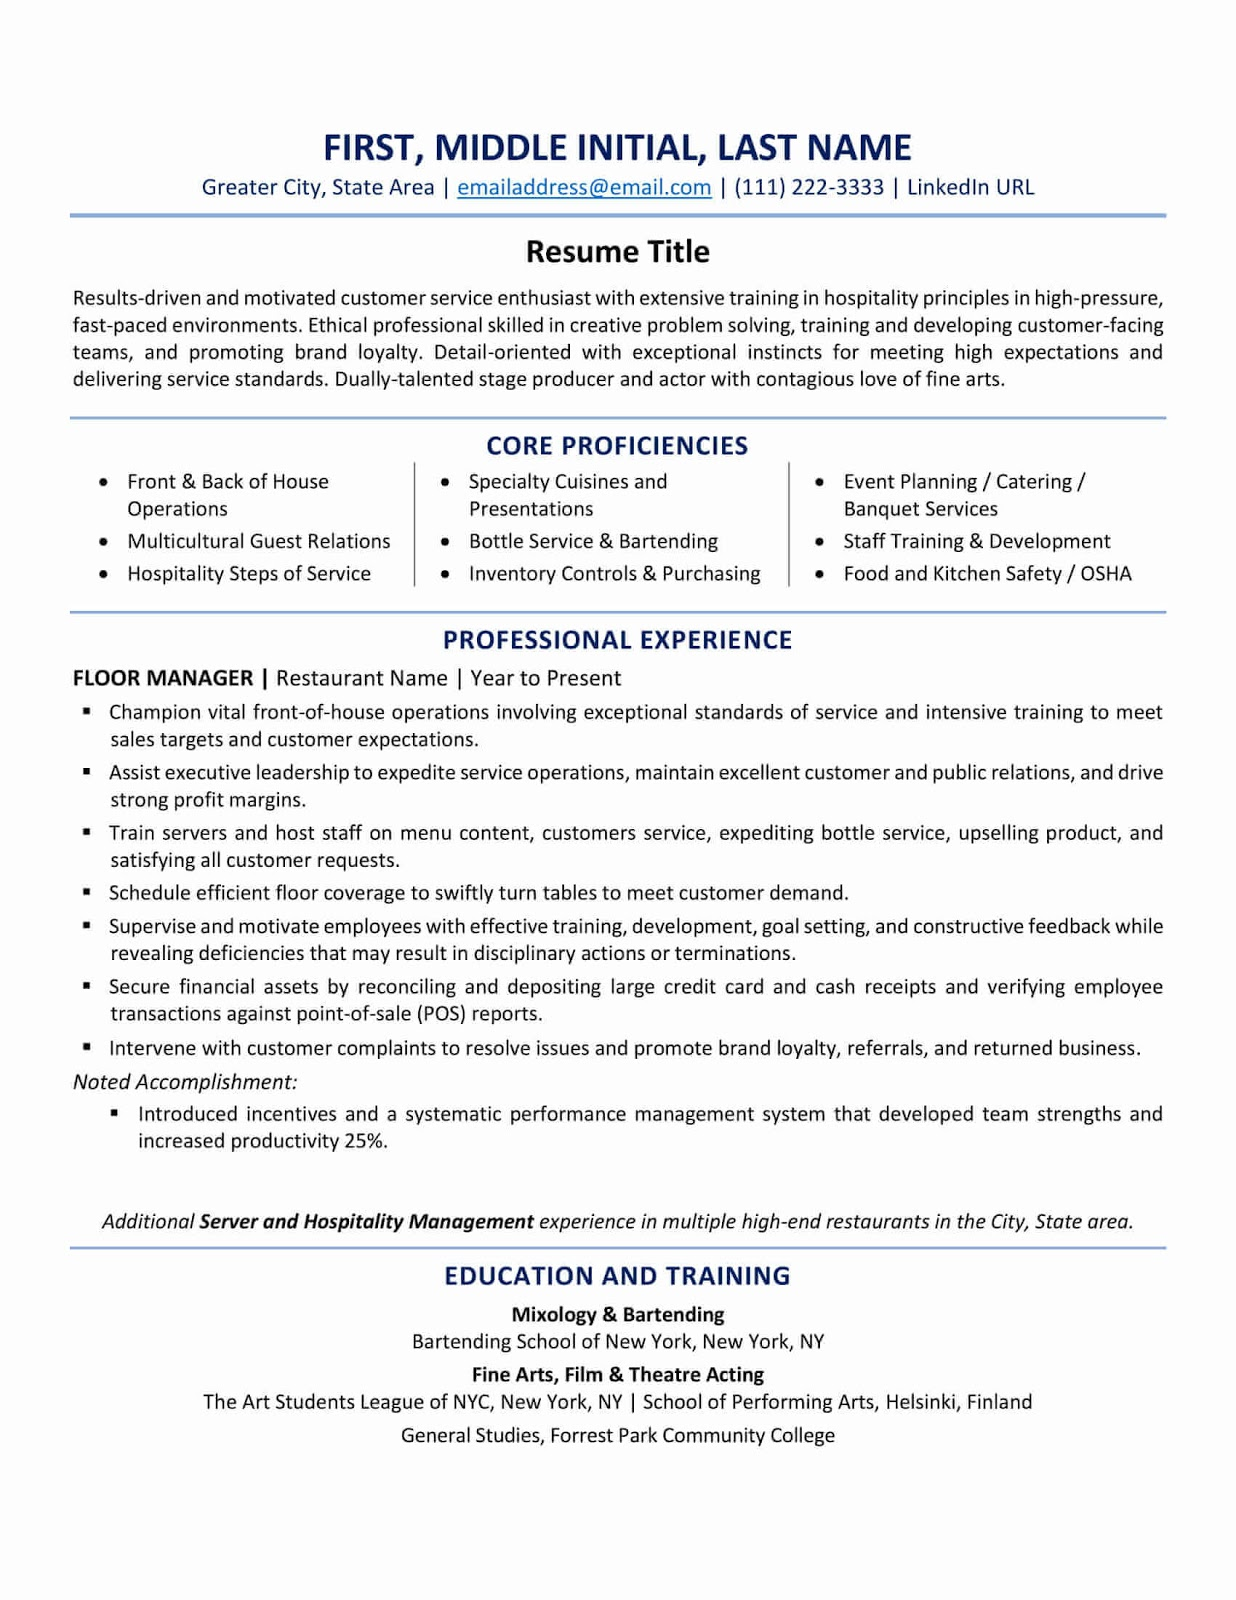 resume format best tips and examples updated zipjob template free experienced teacher Resume Canadian Resume Template Free